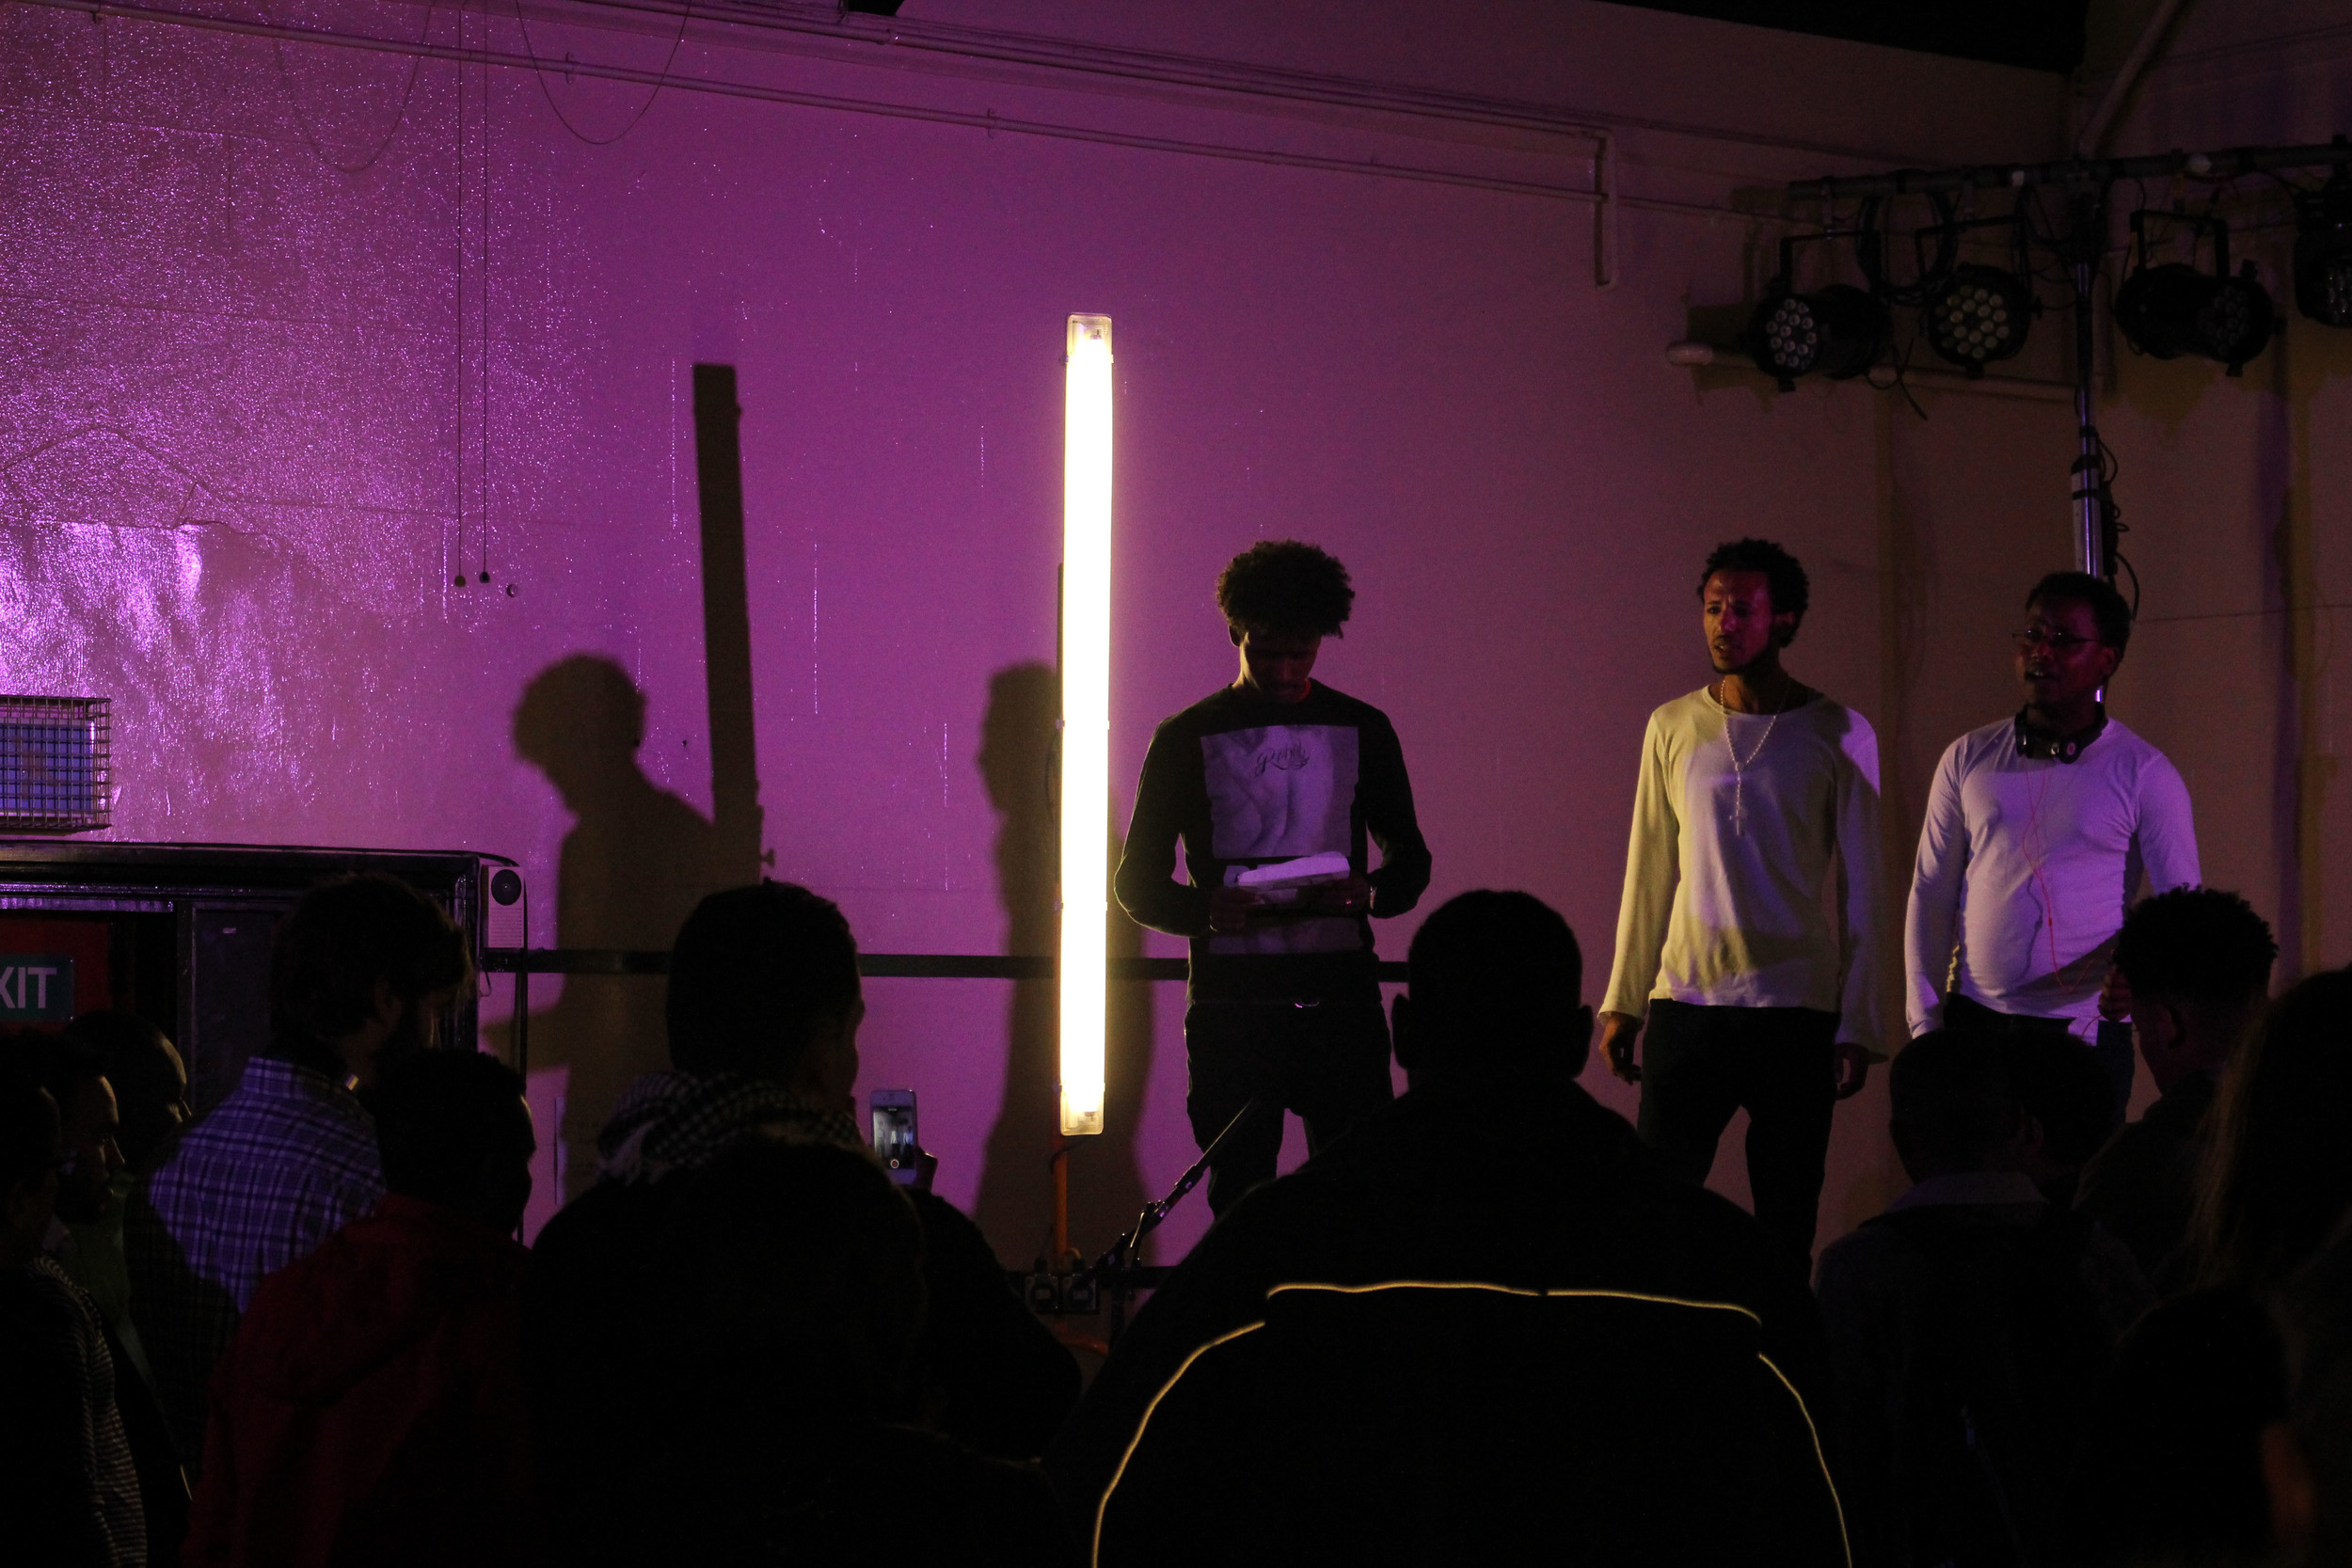 A beautiful performance telling the story of their journey from Eritrea